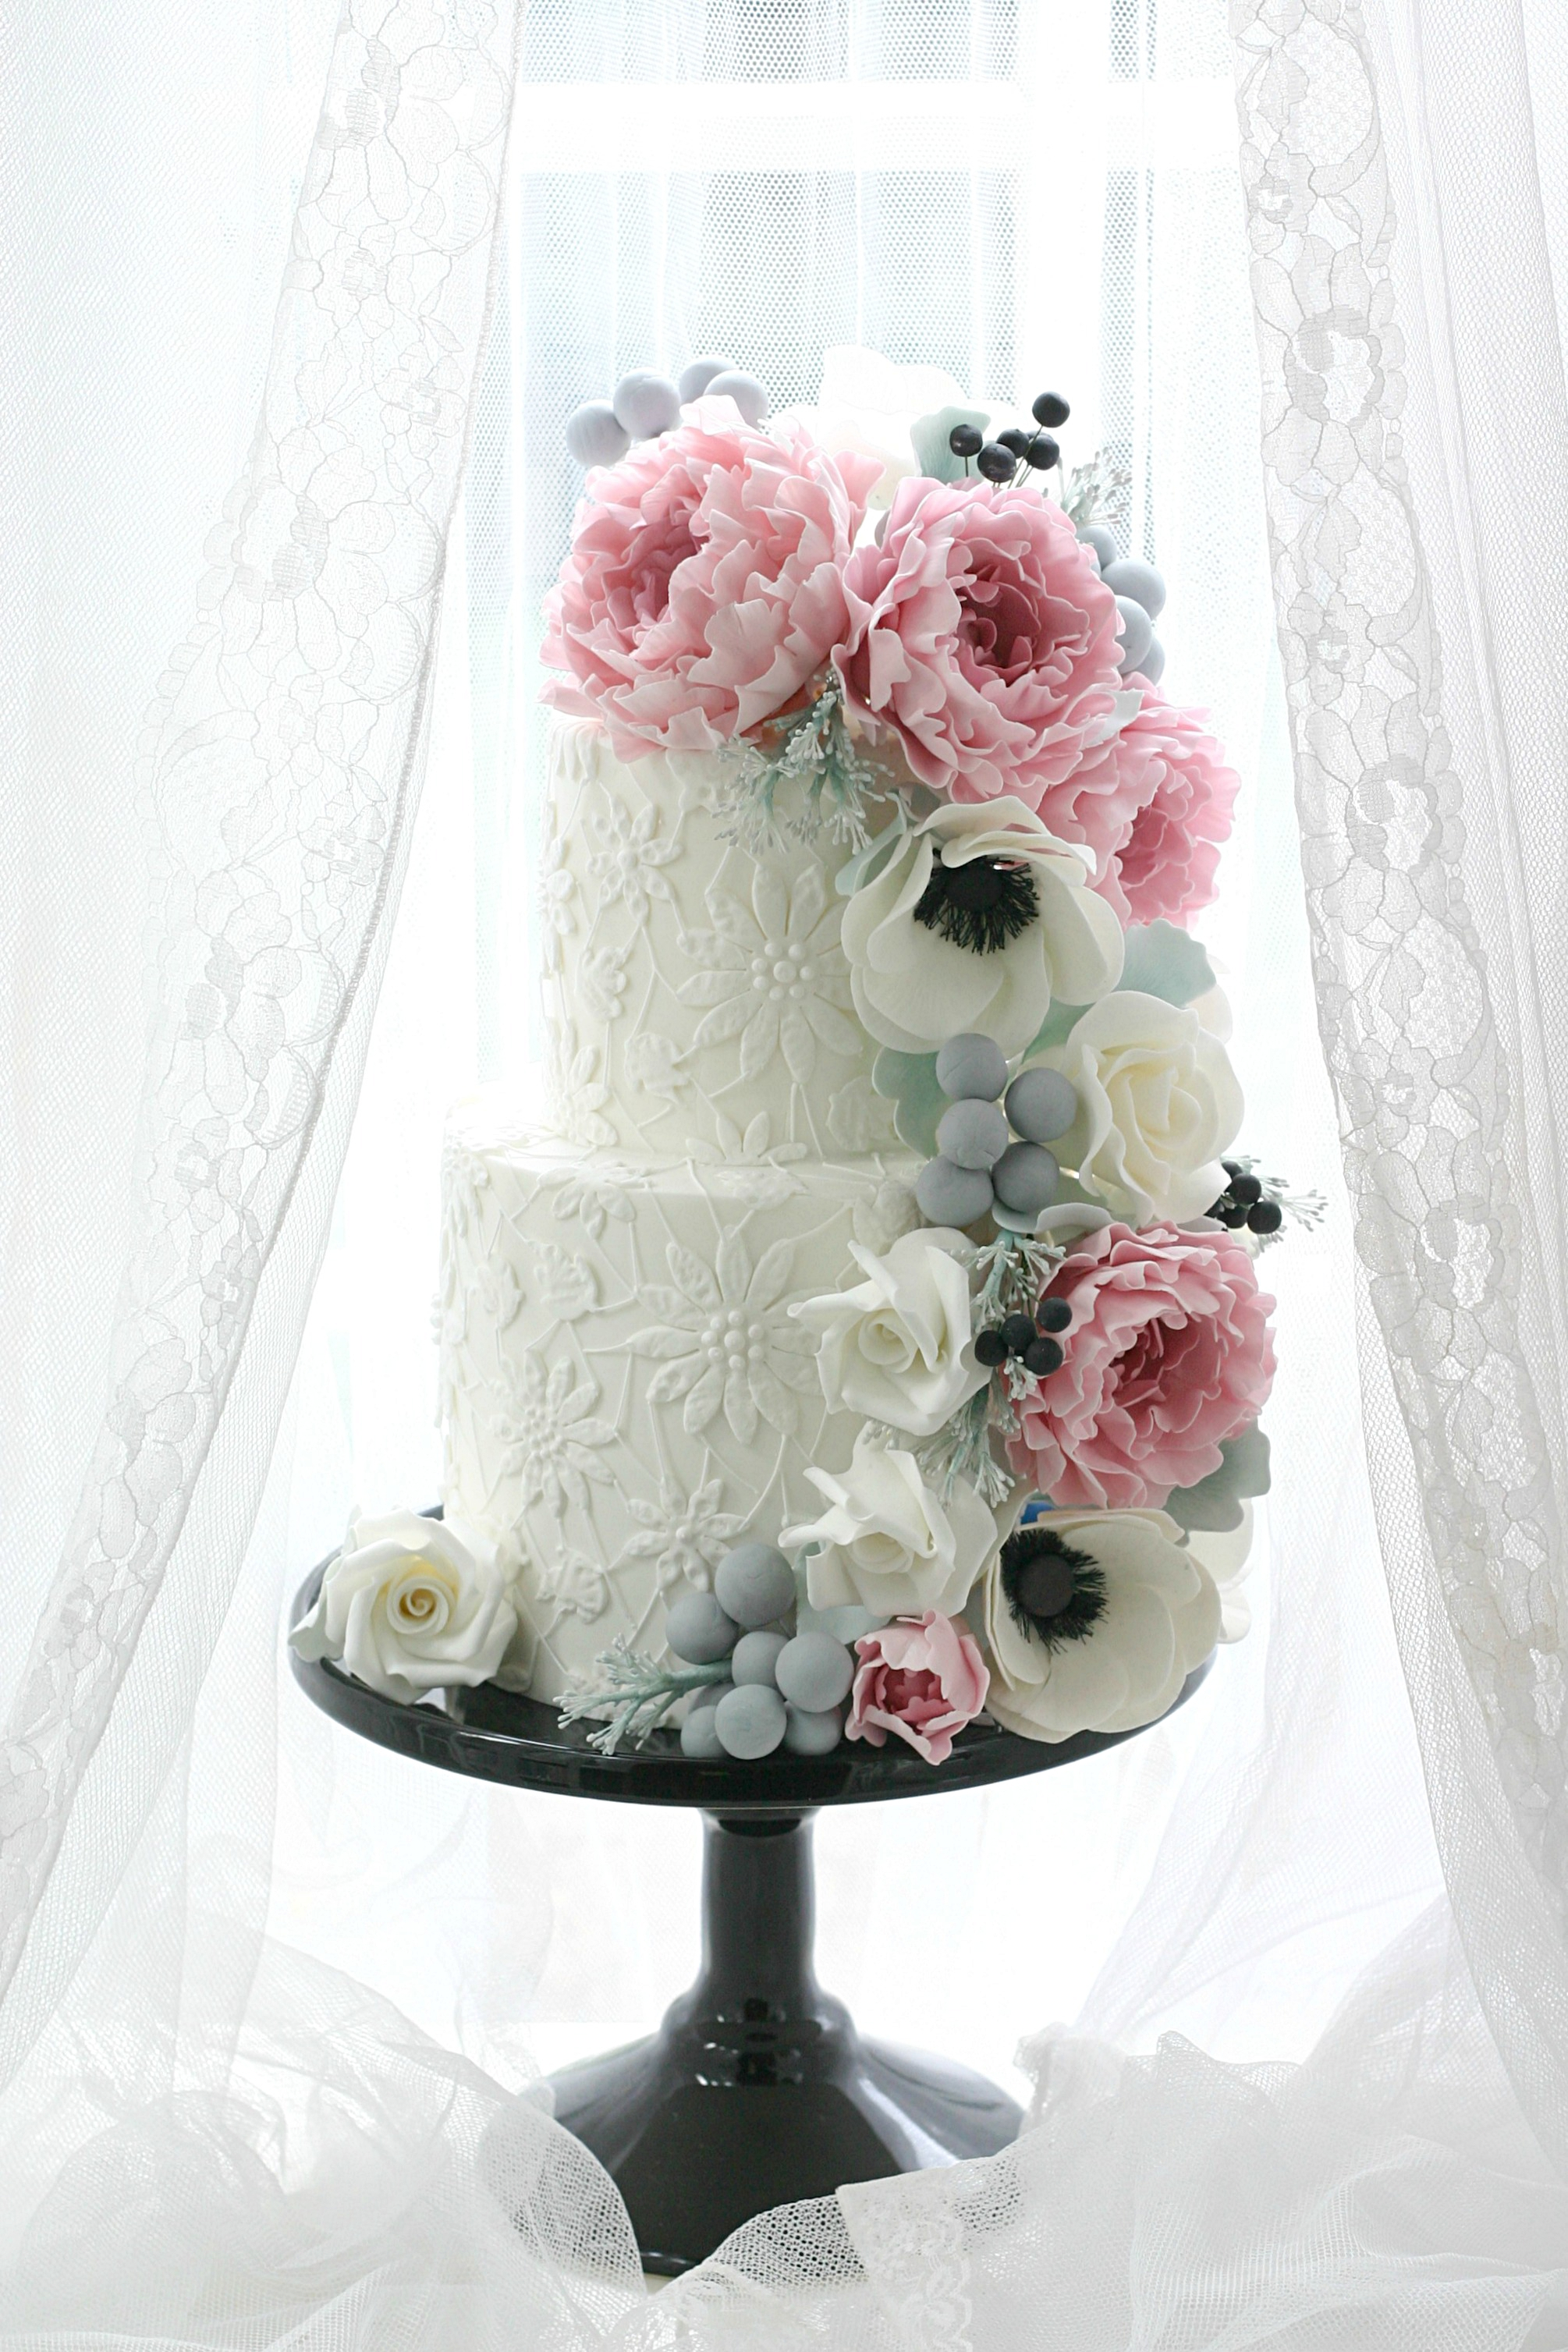 Floral Cascade with daisy lace